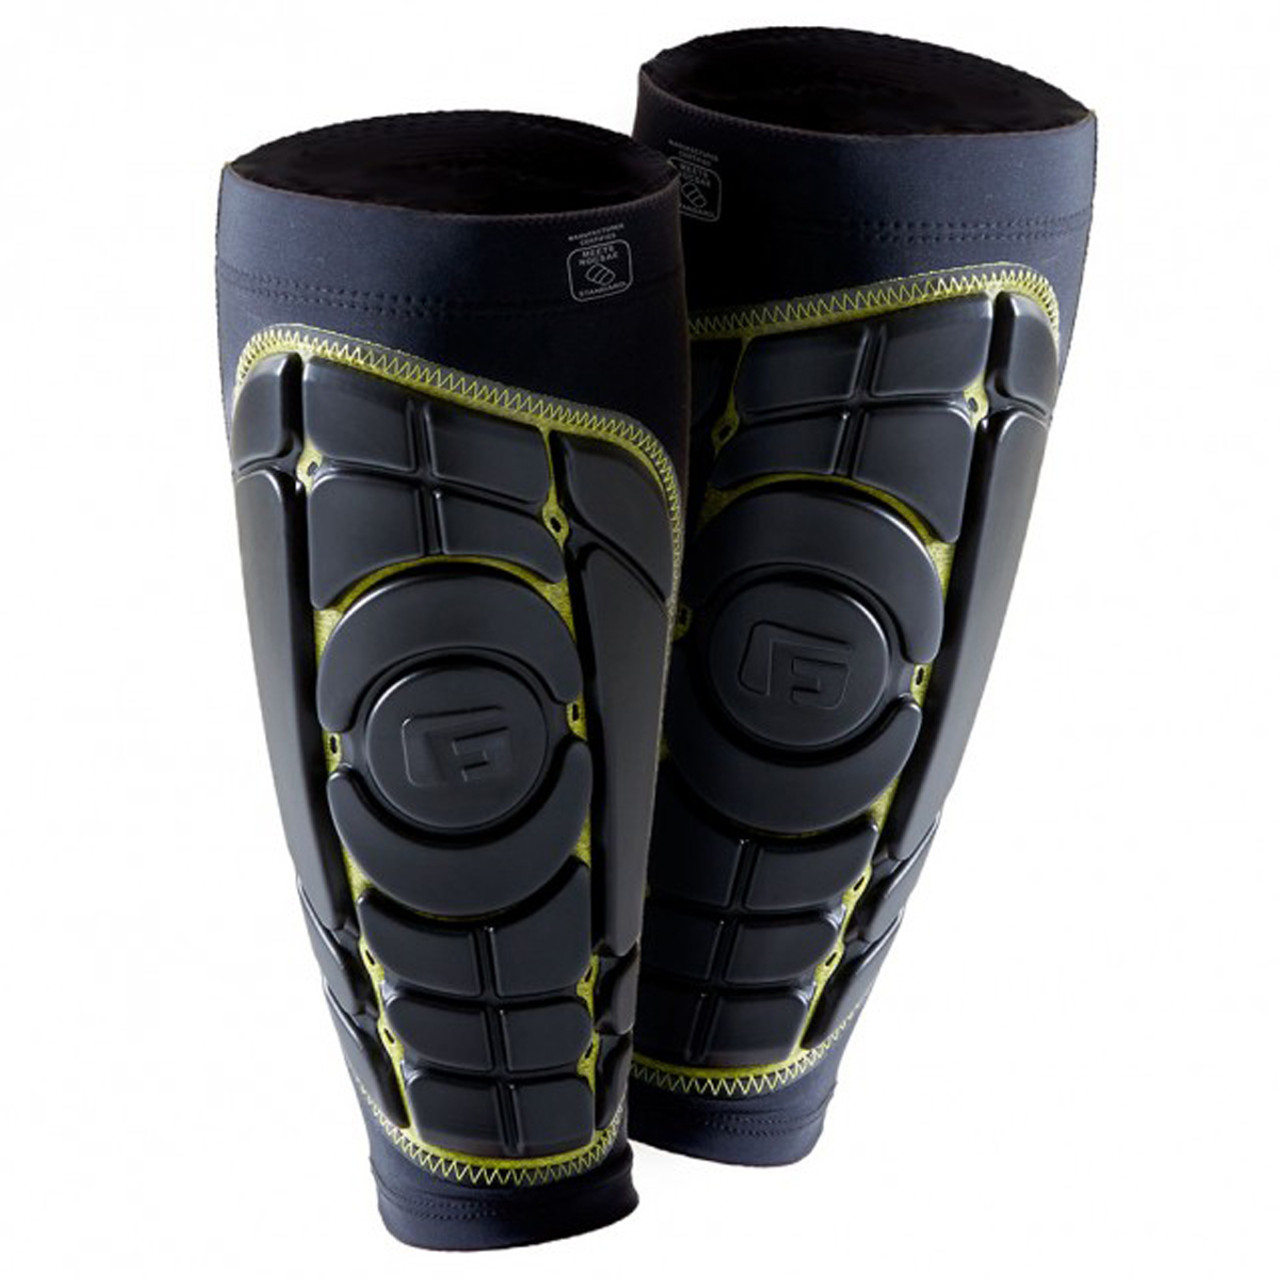 G-Form Pro S Elite Adult Soccer Shin Pads - Black 460818a14a21